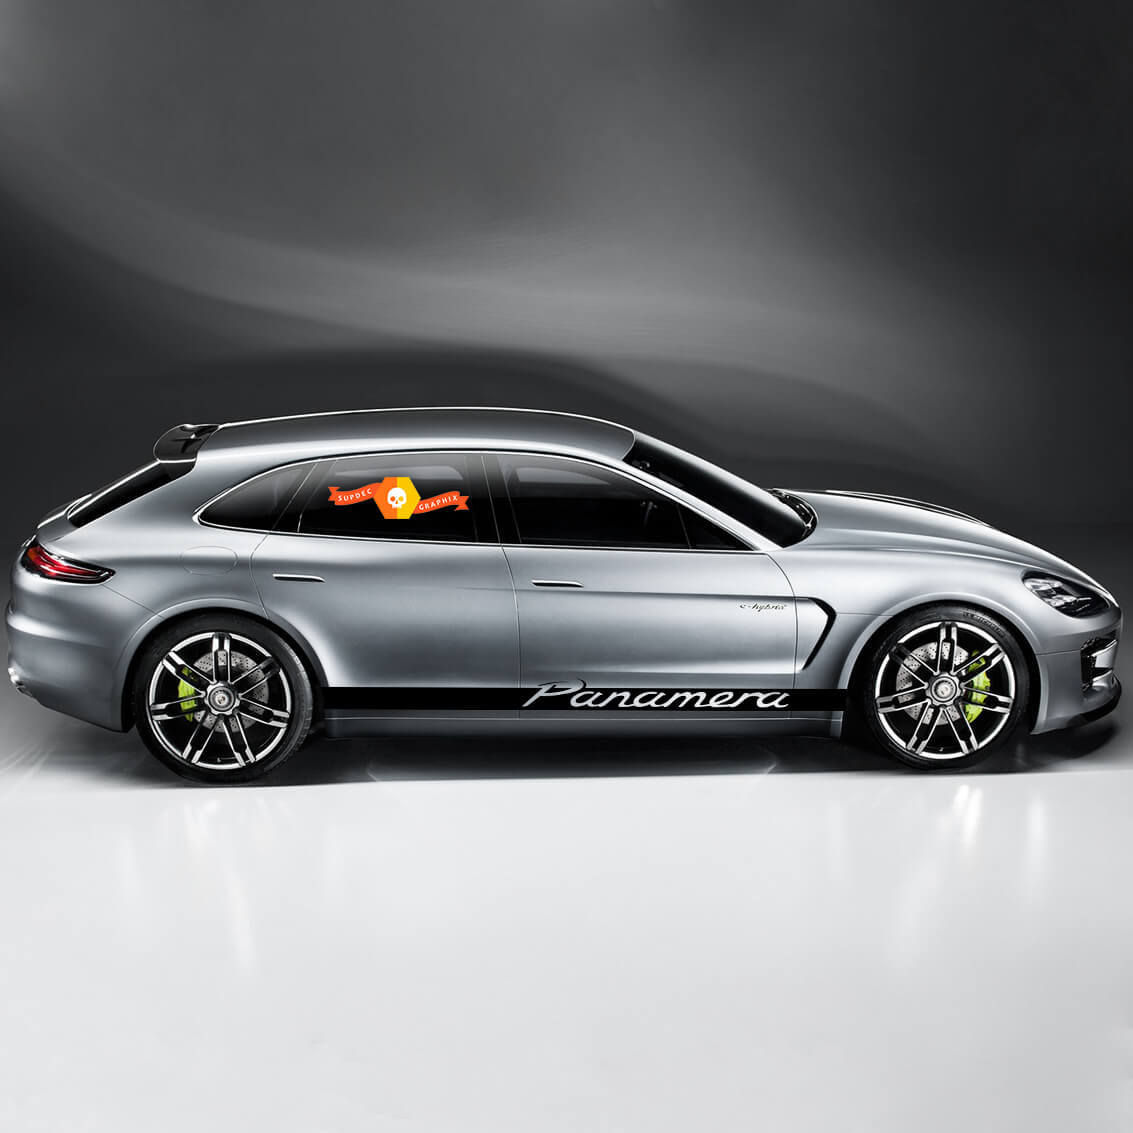 Porsche Panamera Side Stripes Kit Decal Sticker